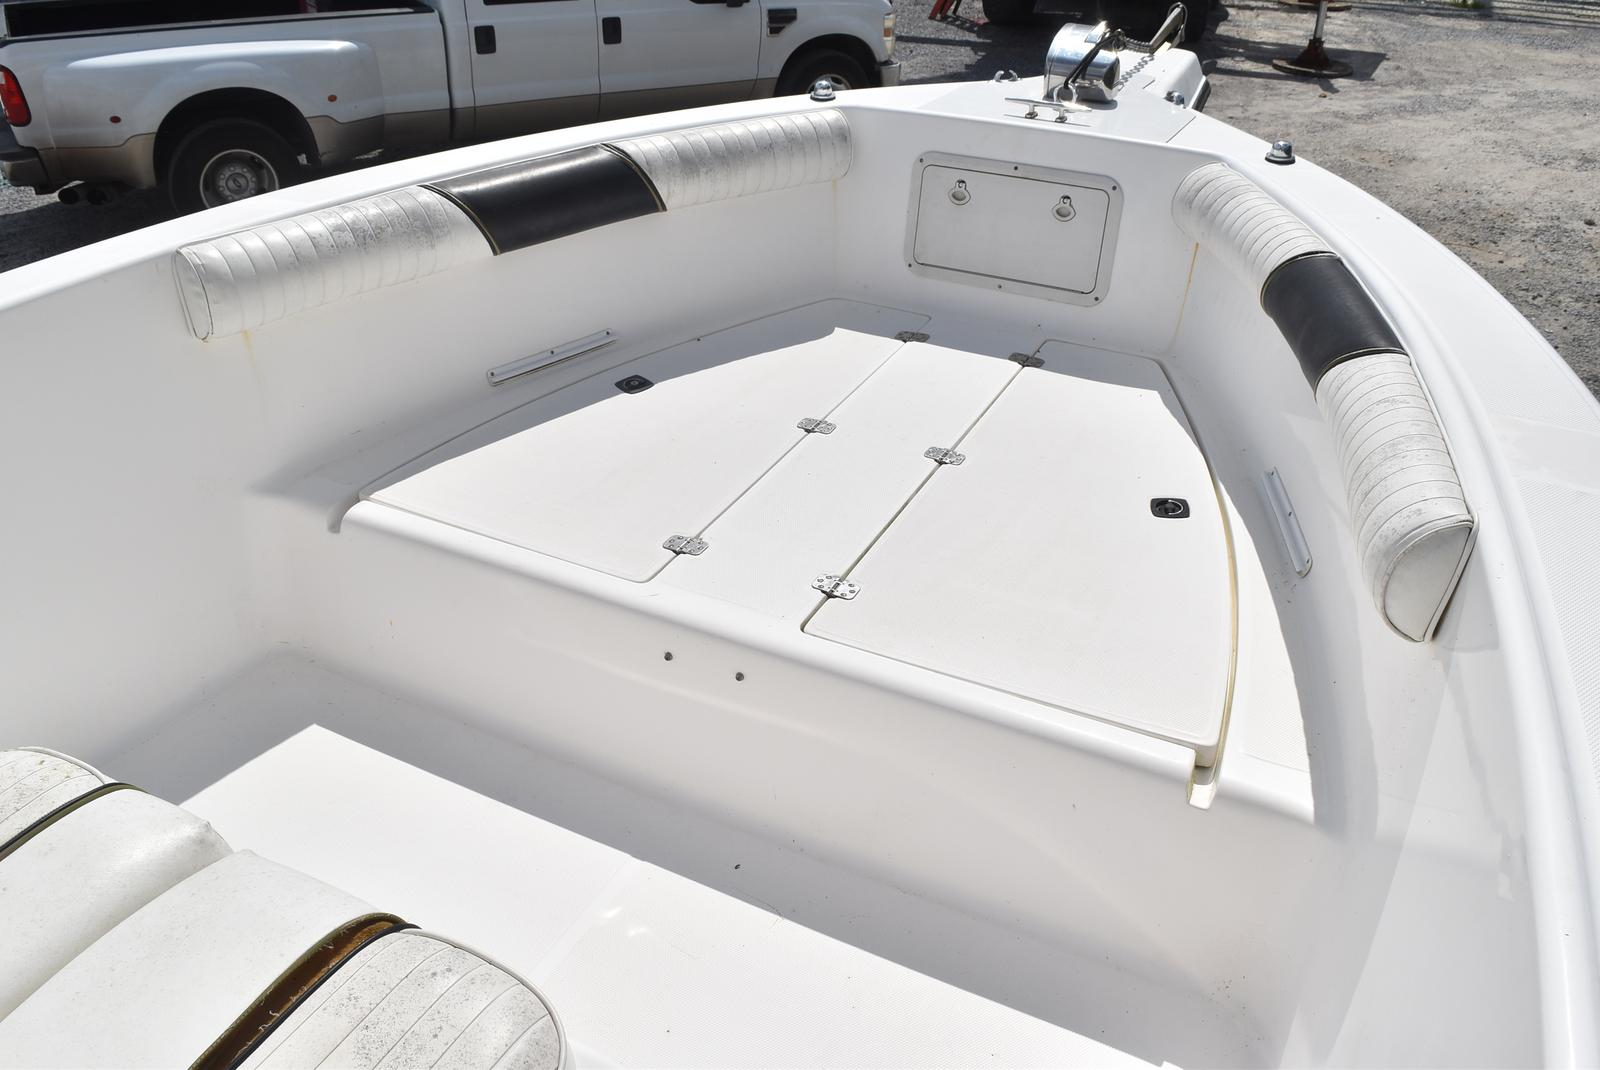 1999 Century boat for sale, model of the boat is 2600 CC & Image # 12 of 18